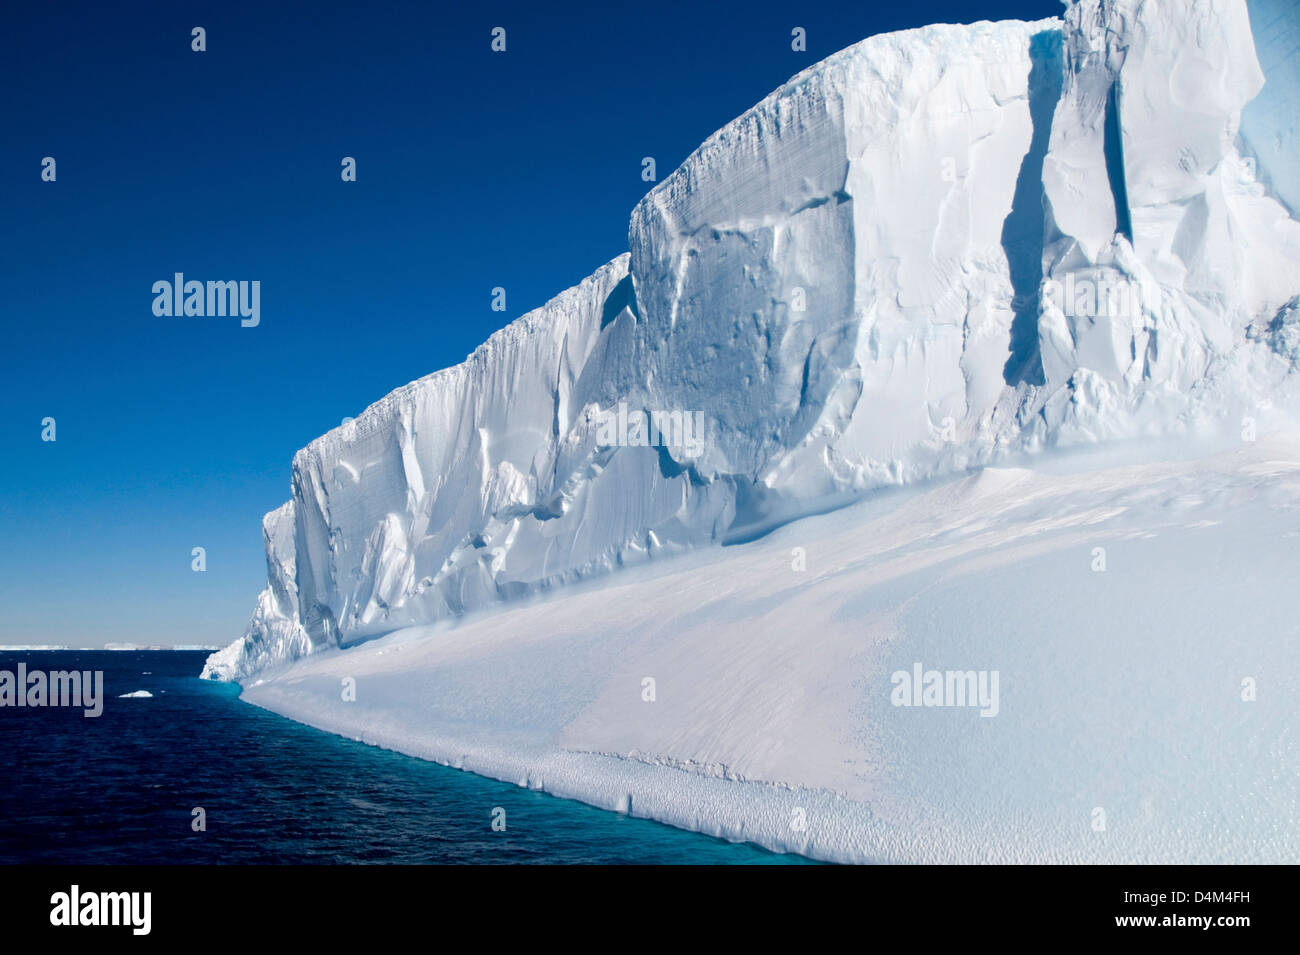 A tabular iceberg located in the waters of Antarctic Sound close to the Antarctic Peninsula - Stock Image